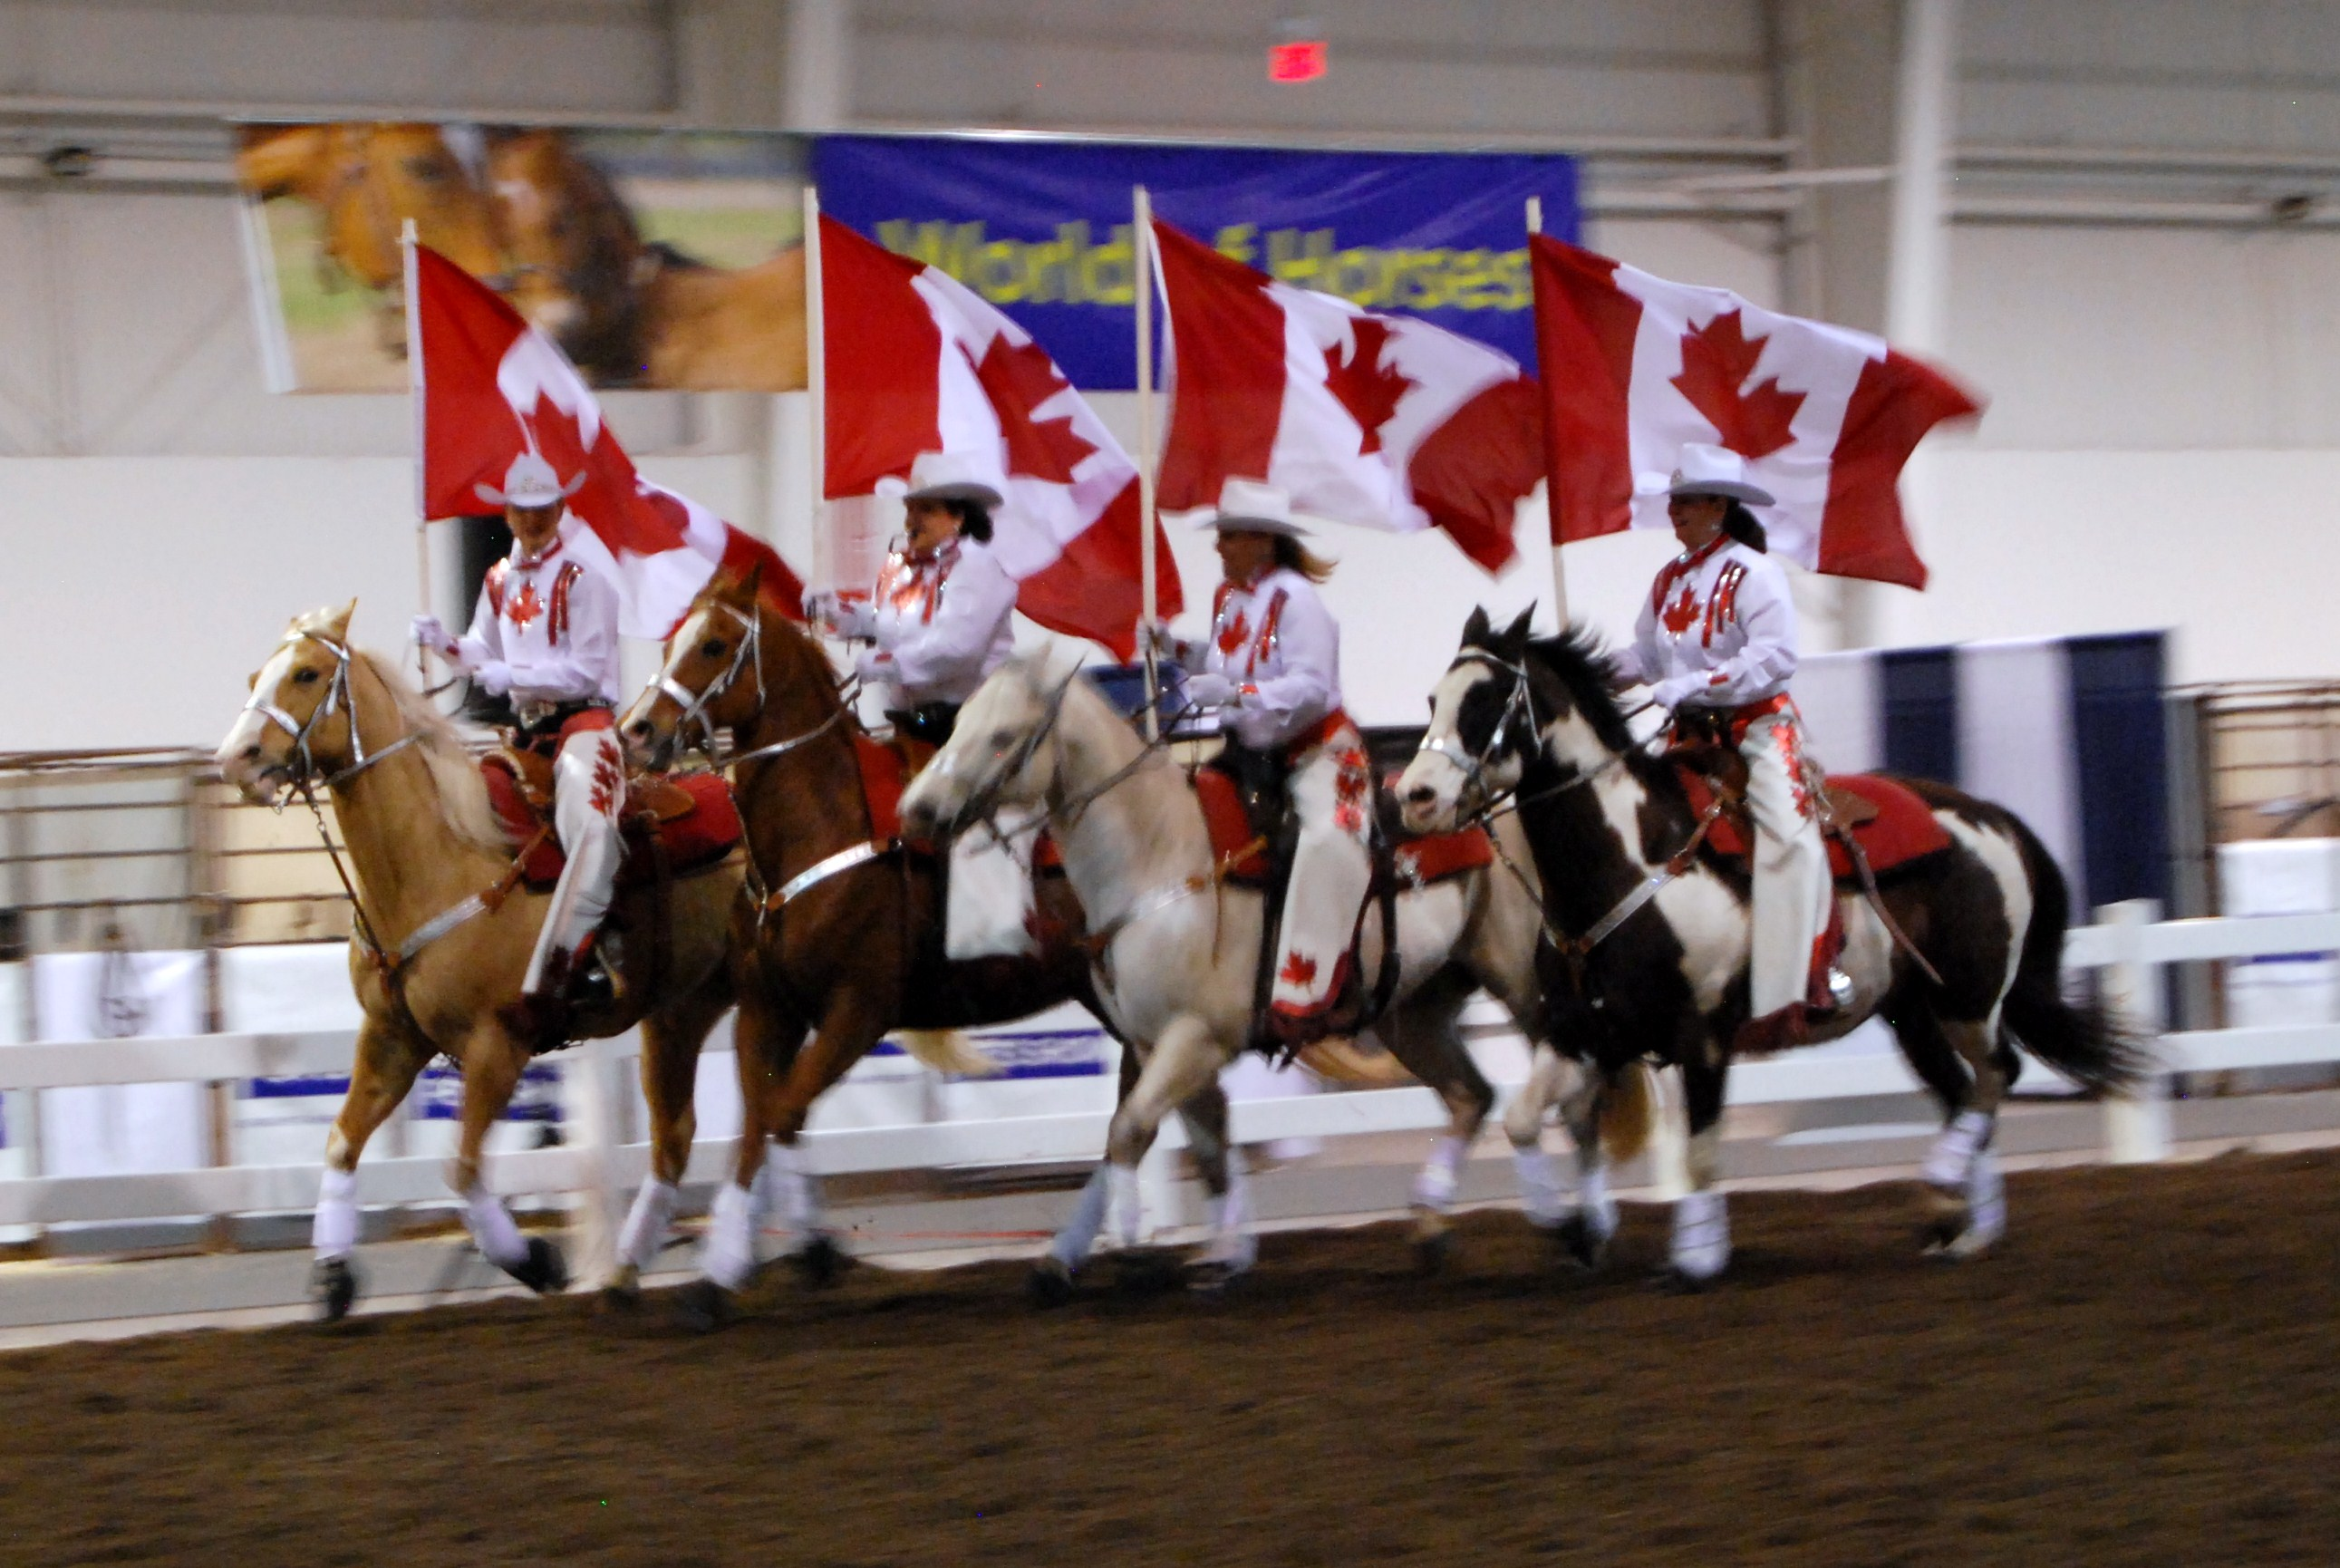 Equine Events 2018 Global Travel For Horse Lovers